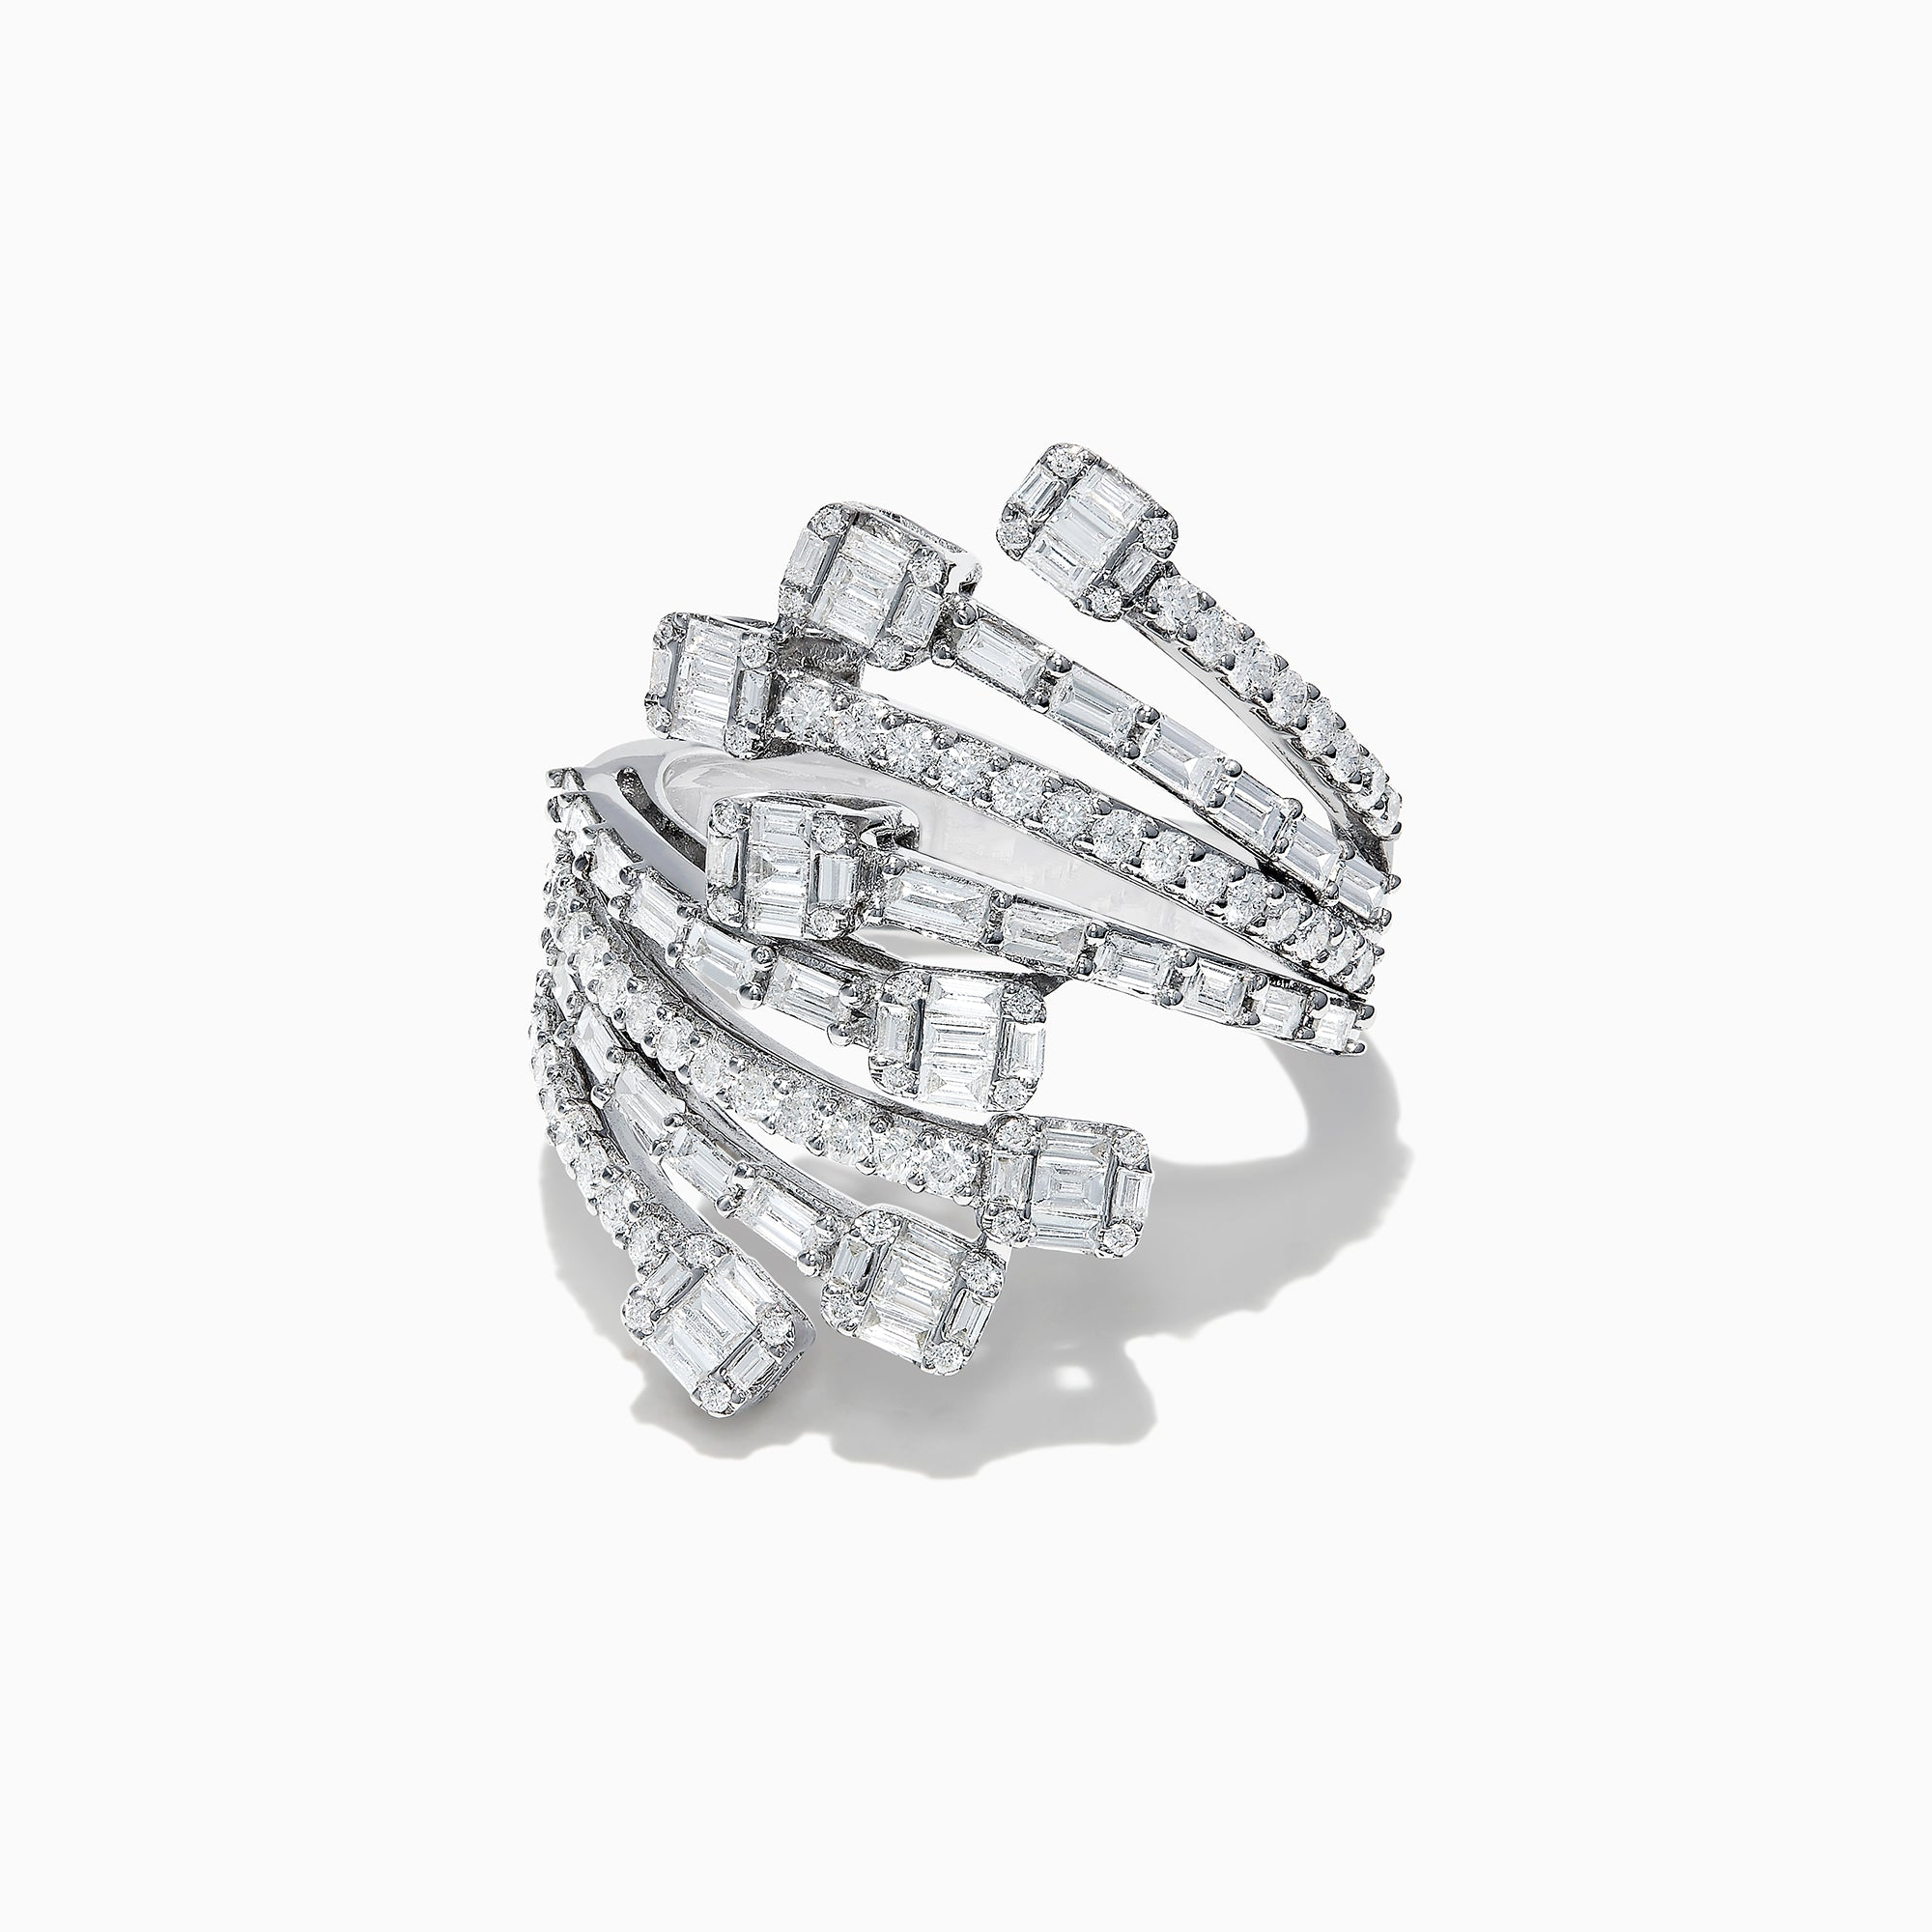 Effy Classique 14K White Gold Diamond Ring, 1.58 TCW